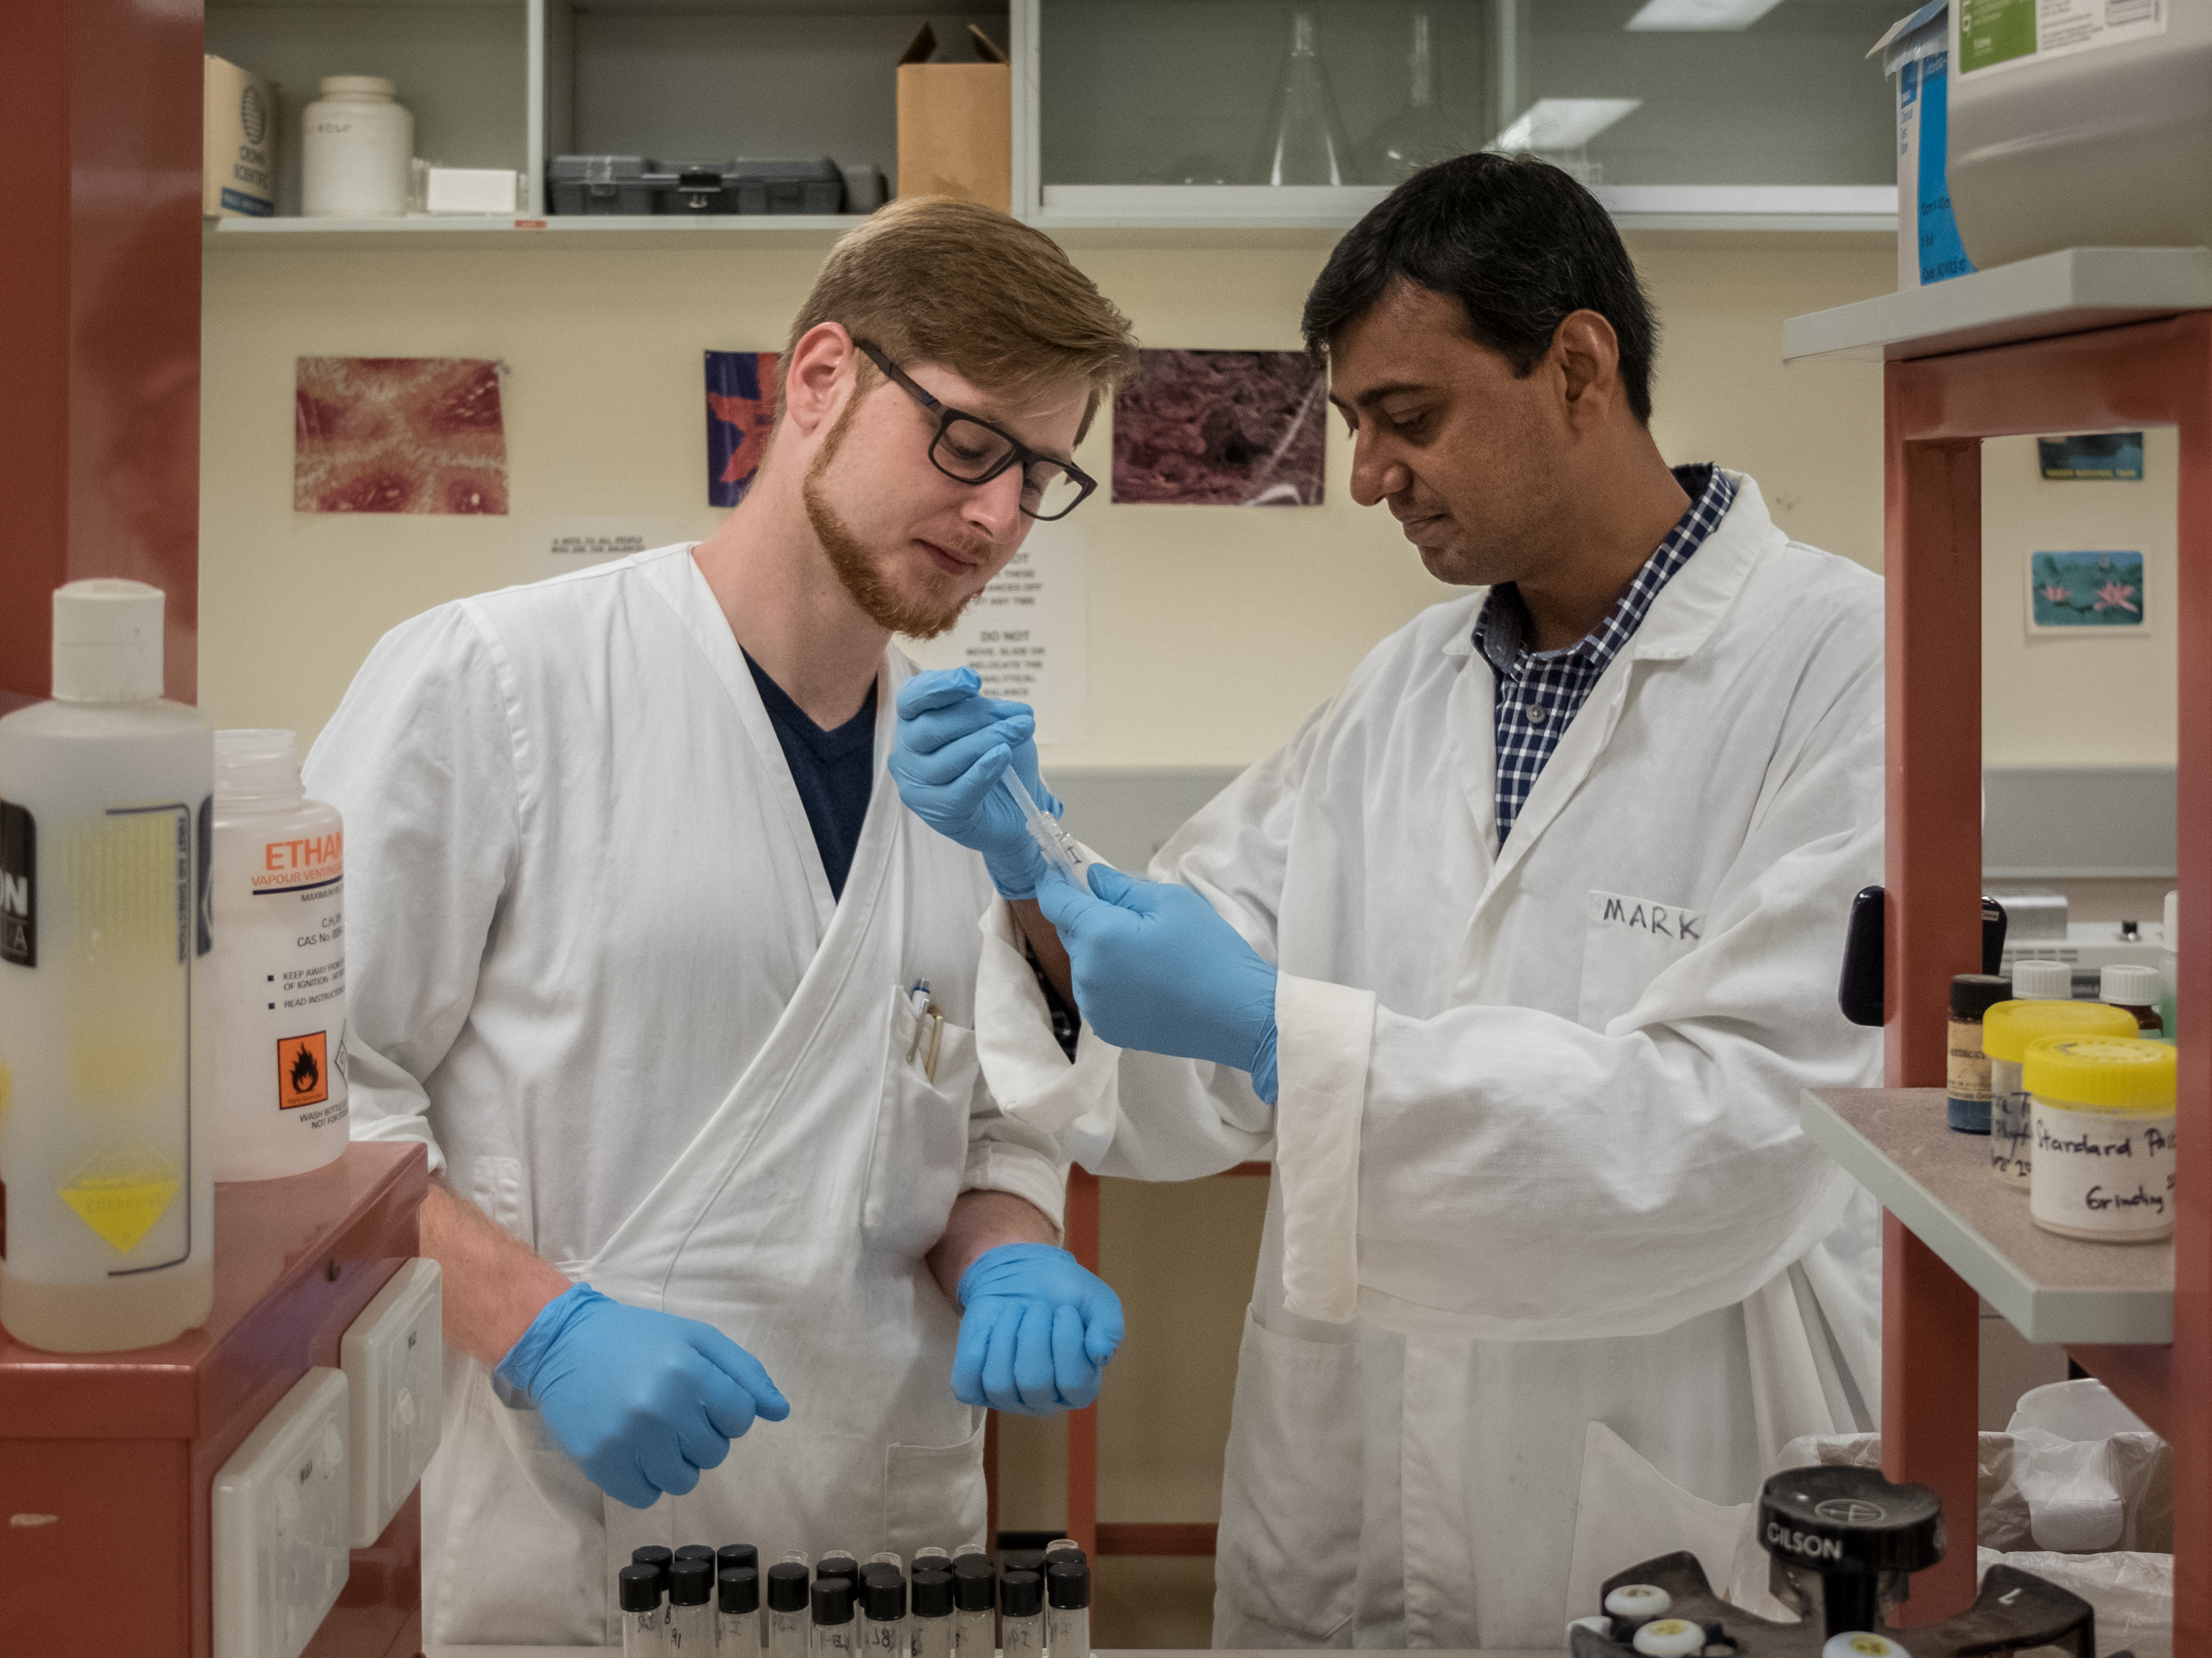 DAAD exchange students Florian Metzger, from Germany, and Zafar Iqbal, from Pakistan, collaborate on a shared poultry nutrition project at the University of New England.